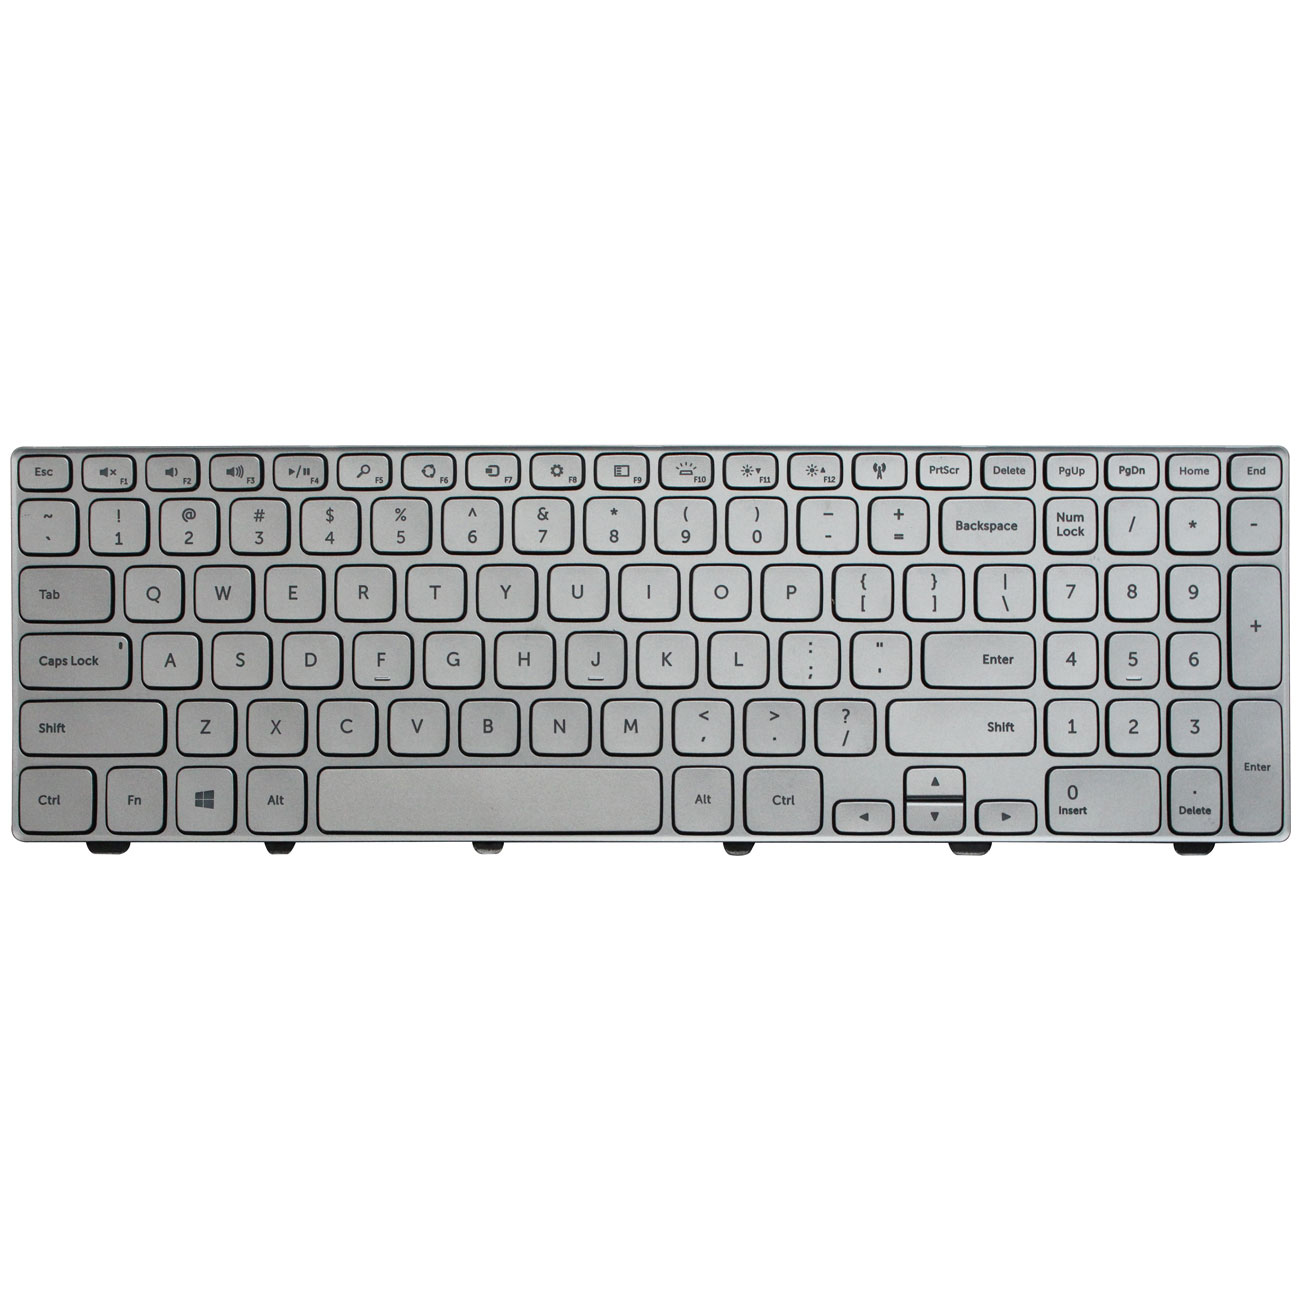 Keyboard For DELL Inspiron 15 7000 Series 15 7537 Series Laptop Backlit